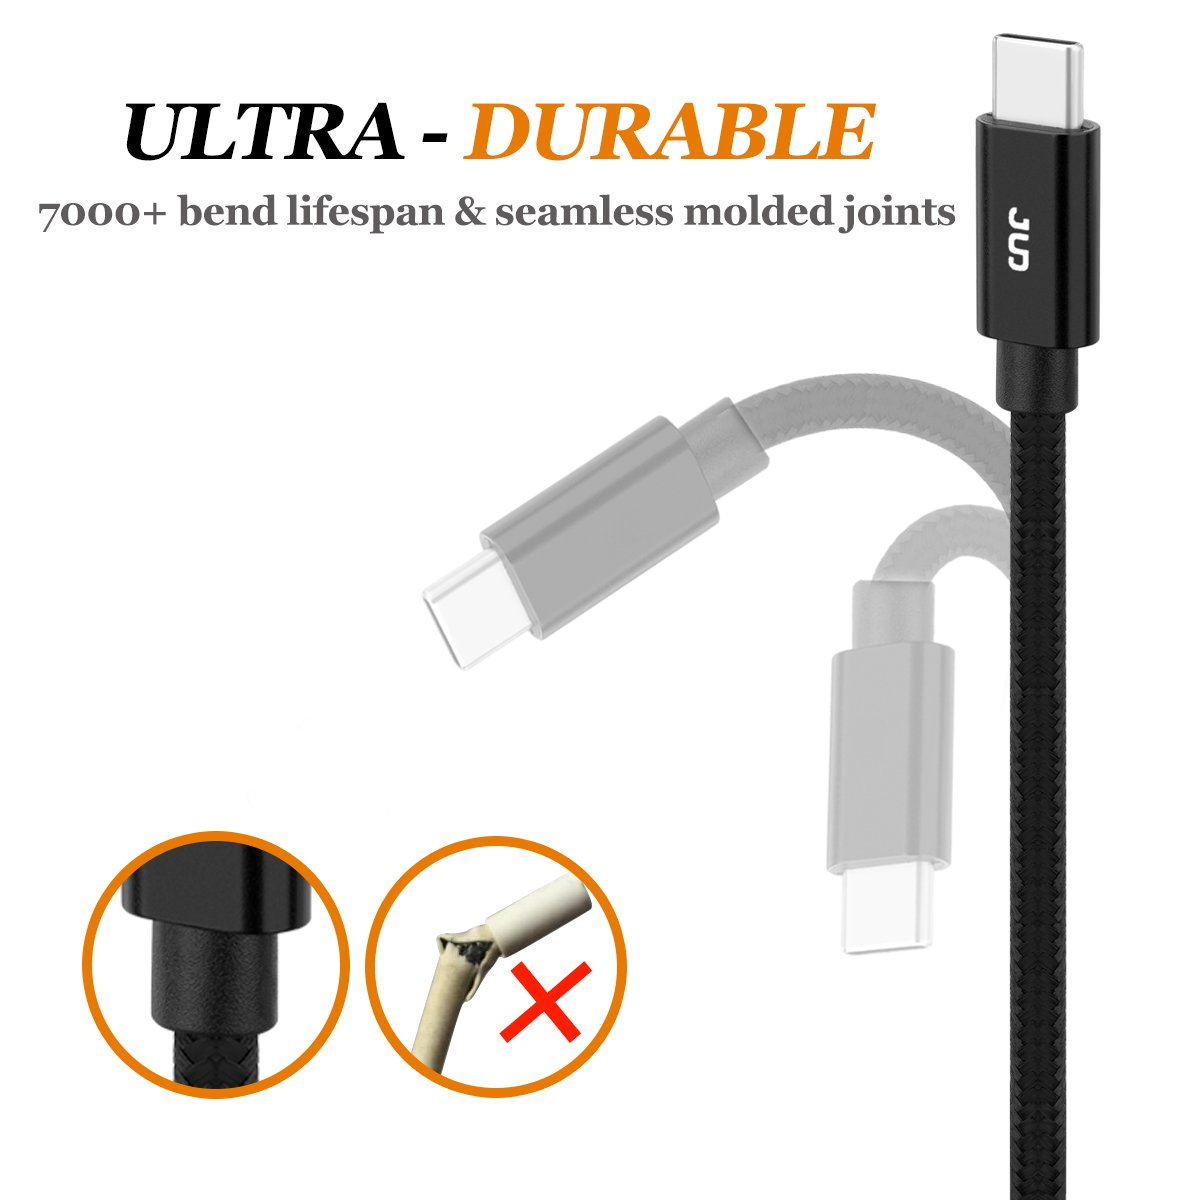 Type C Cable, JUD USB C to USB 3.0 Charger cable(2 Pack, 3ft/6ft) Nylon Braided Fast Charging Cord for Samsung Galaxy Note 8, S8, S8+, LG V20 V30 G5 G6, Nexus 6P 5X and More (BLK)